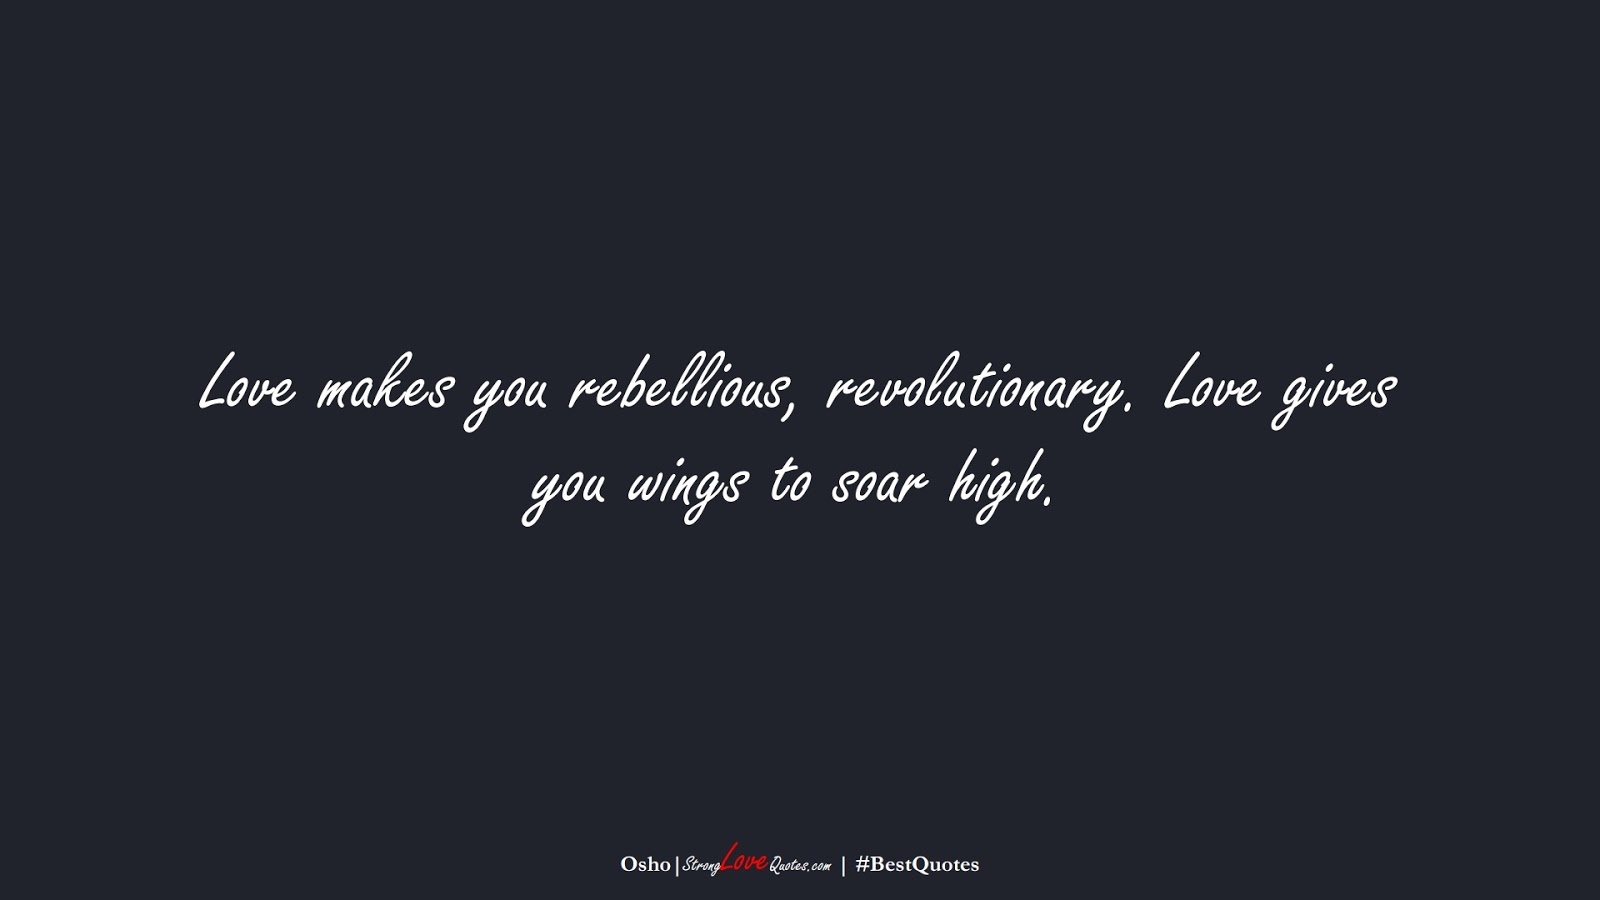 Love makes you rebellious, revolutionary. Love gives you wings to soar high. (Osho);  #BestQuotes